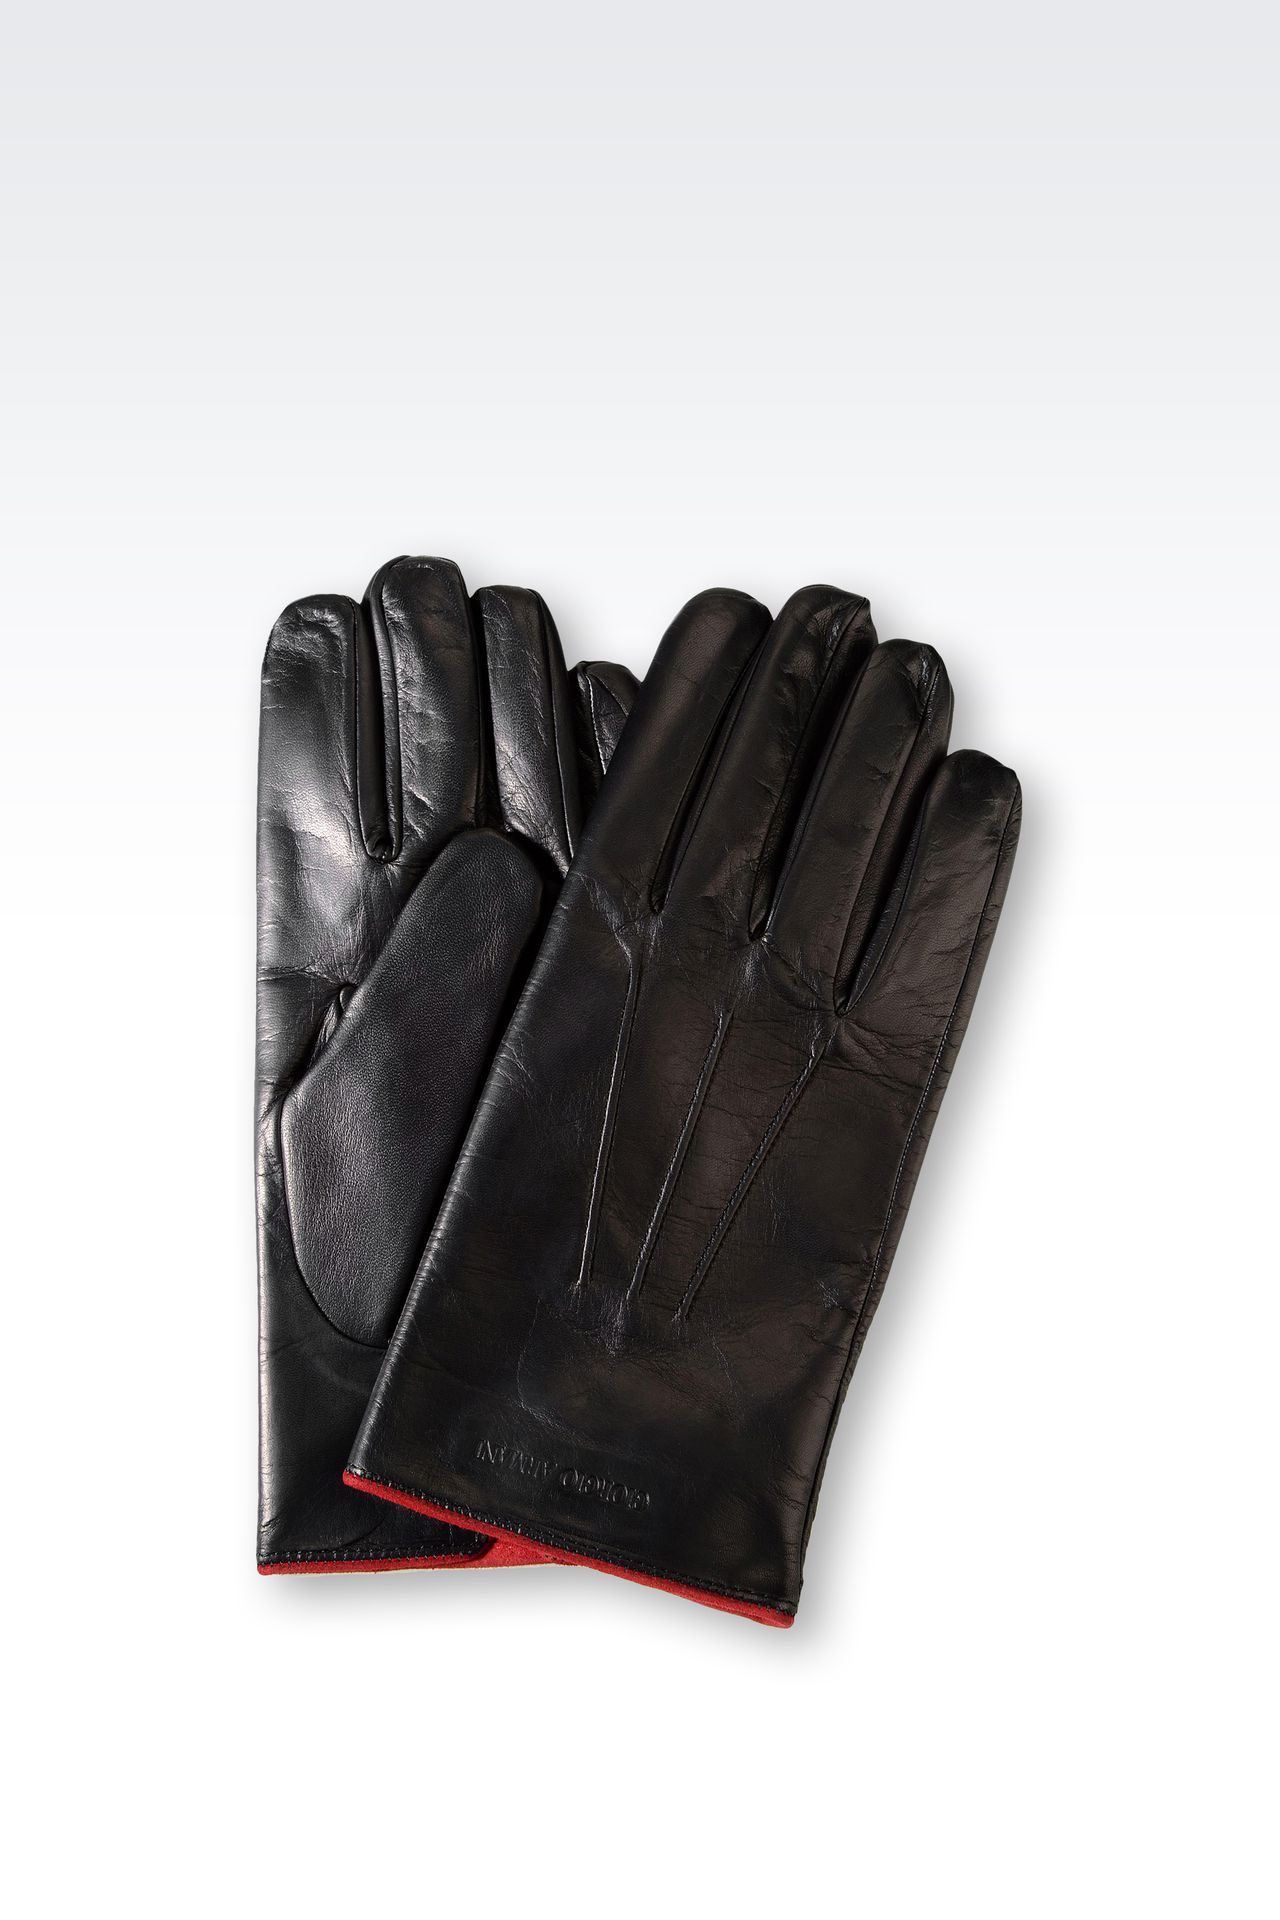 Armani exchange black leather gloves - Nappa Leather Gloves With Contrasting Interior Gloves Men By Armani 0